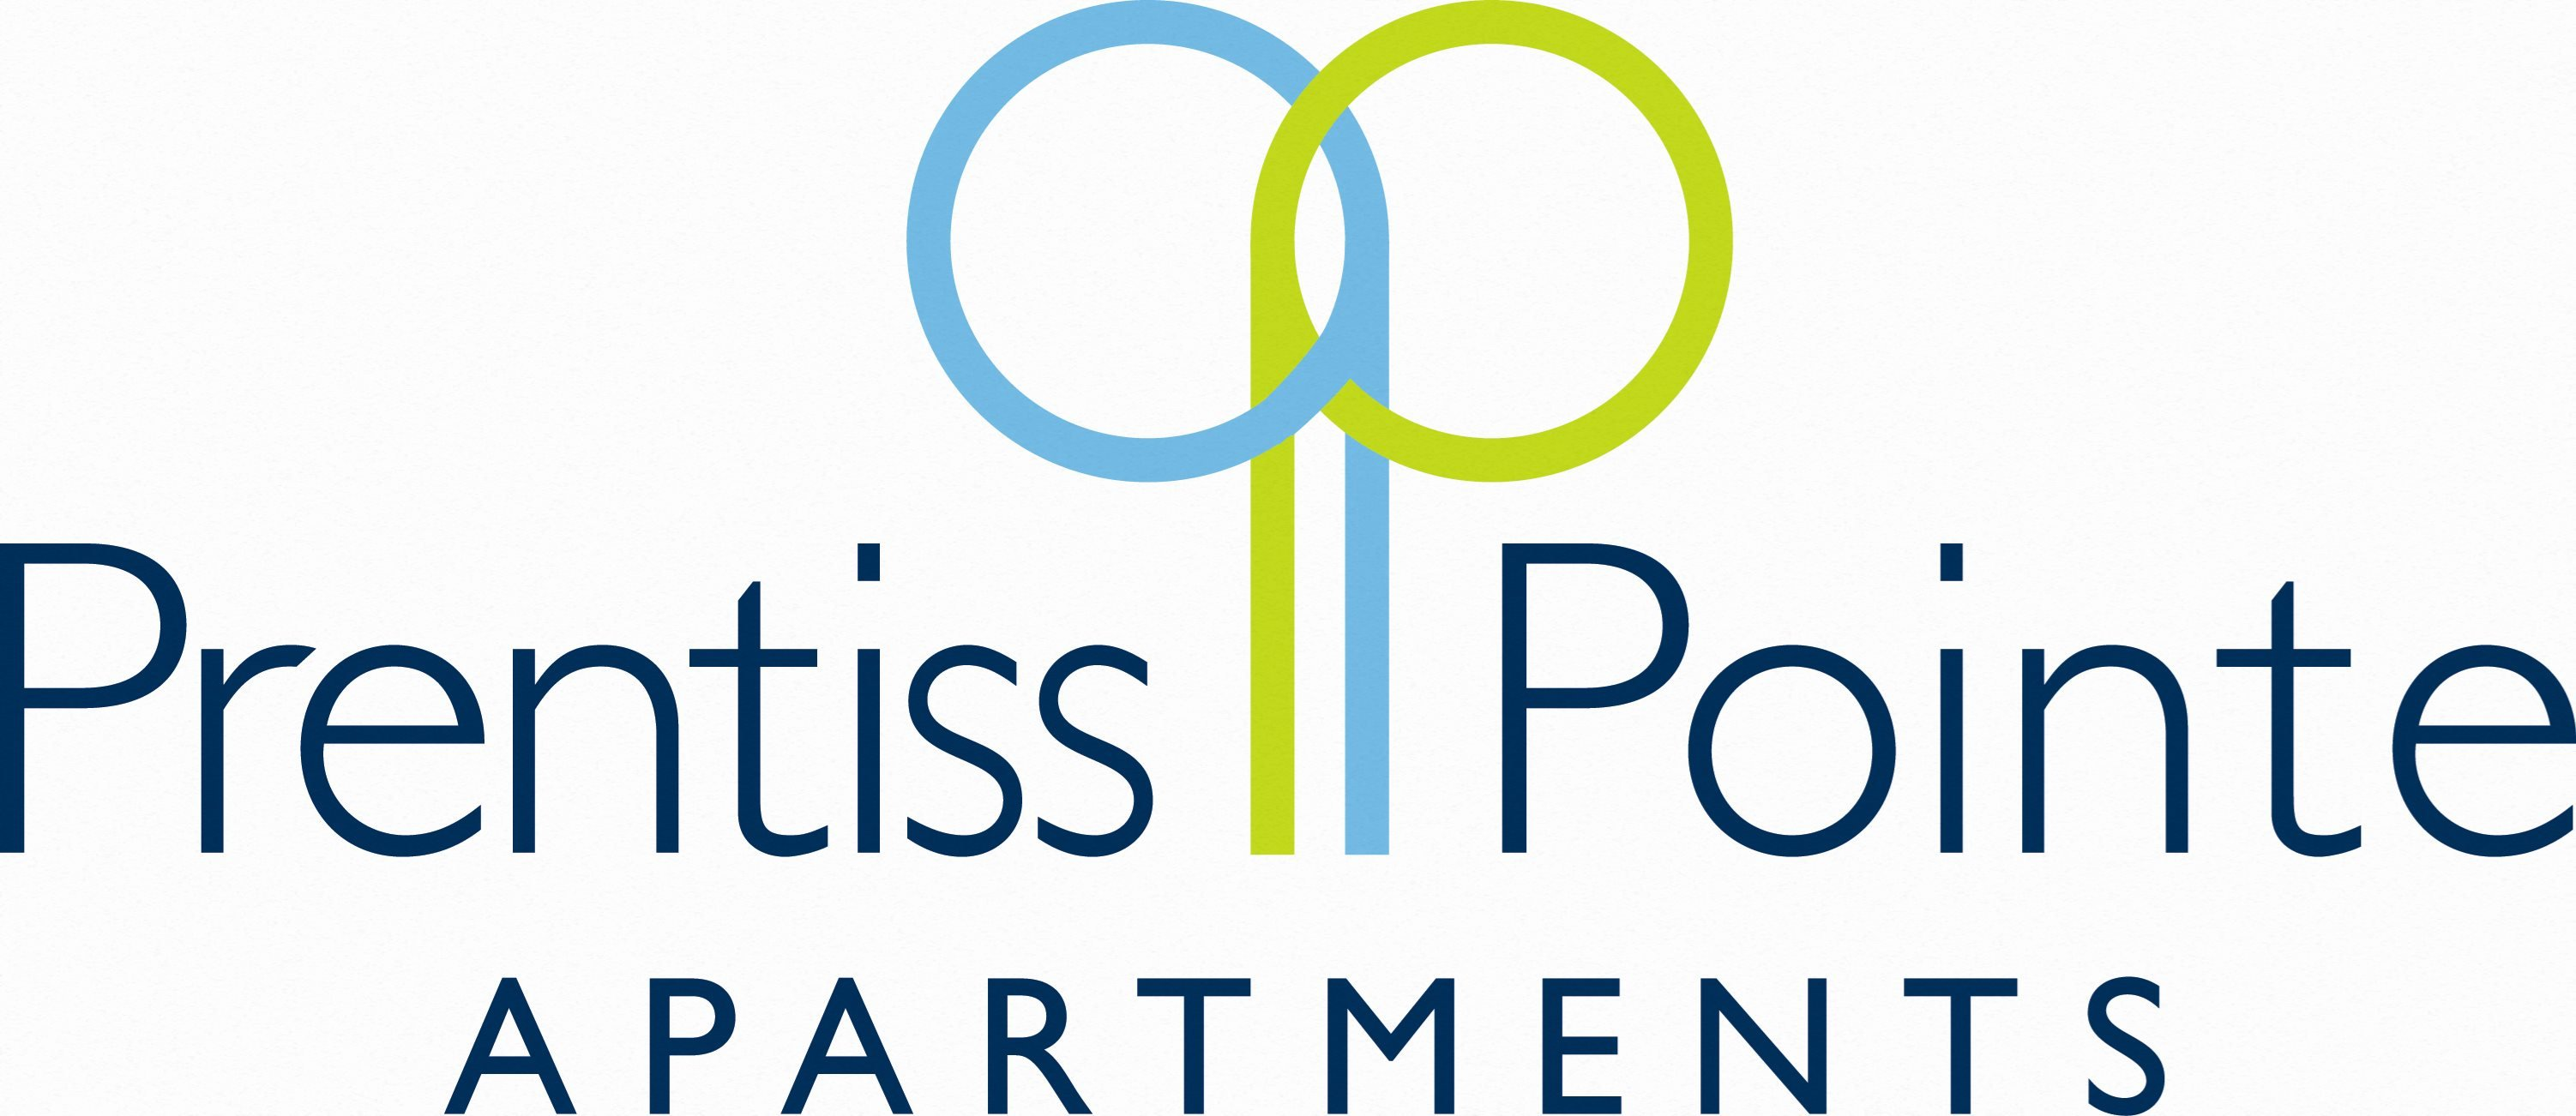 Logo for Prentiss Pointe Apartments in Harrison Township, MI